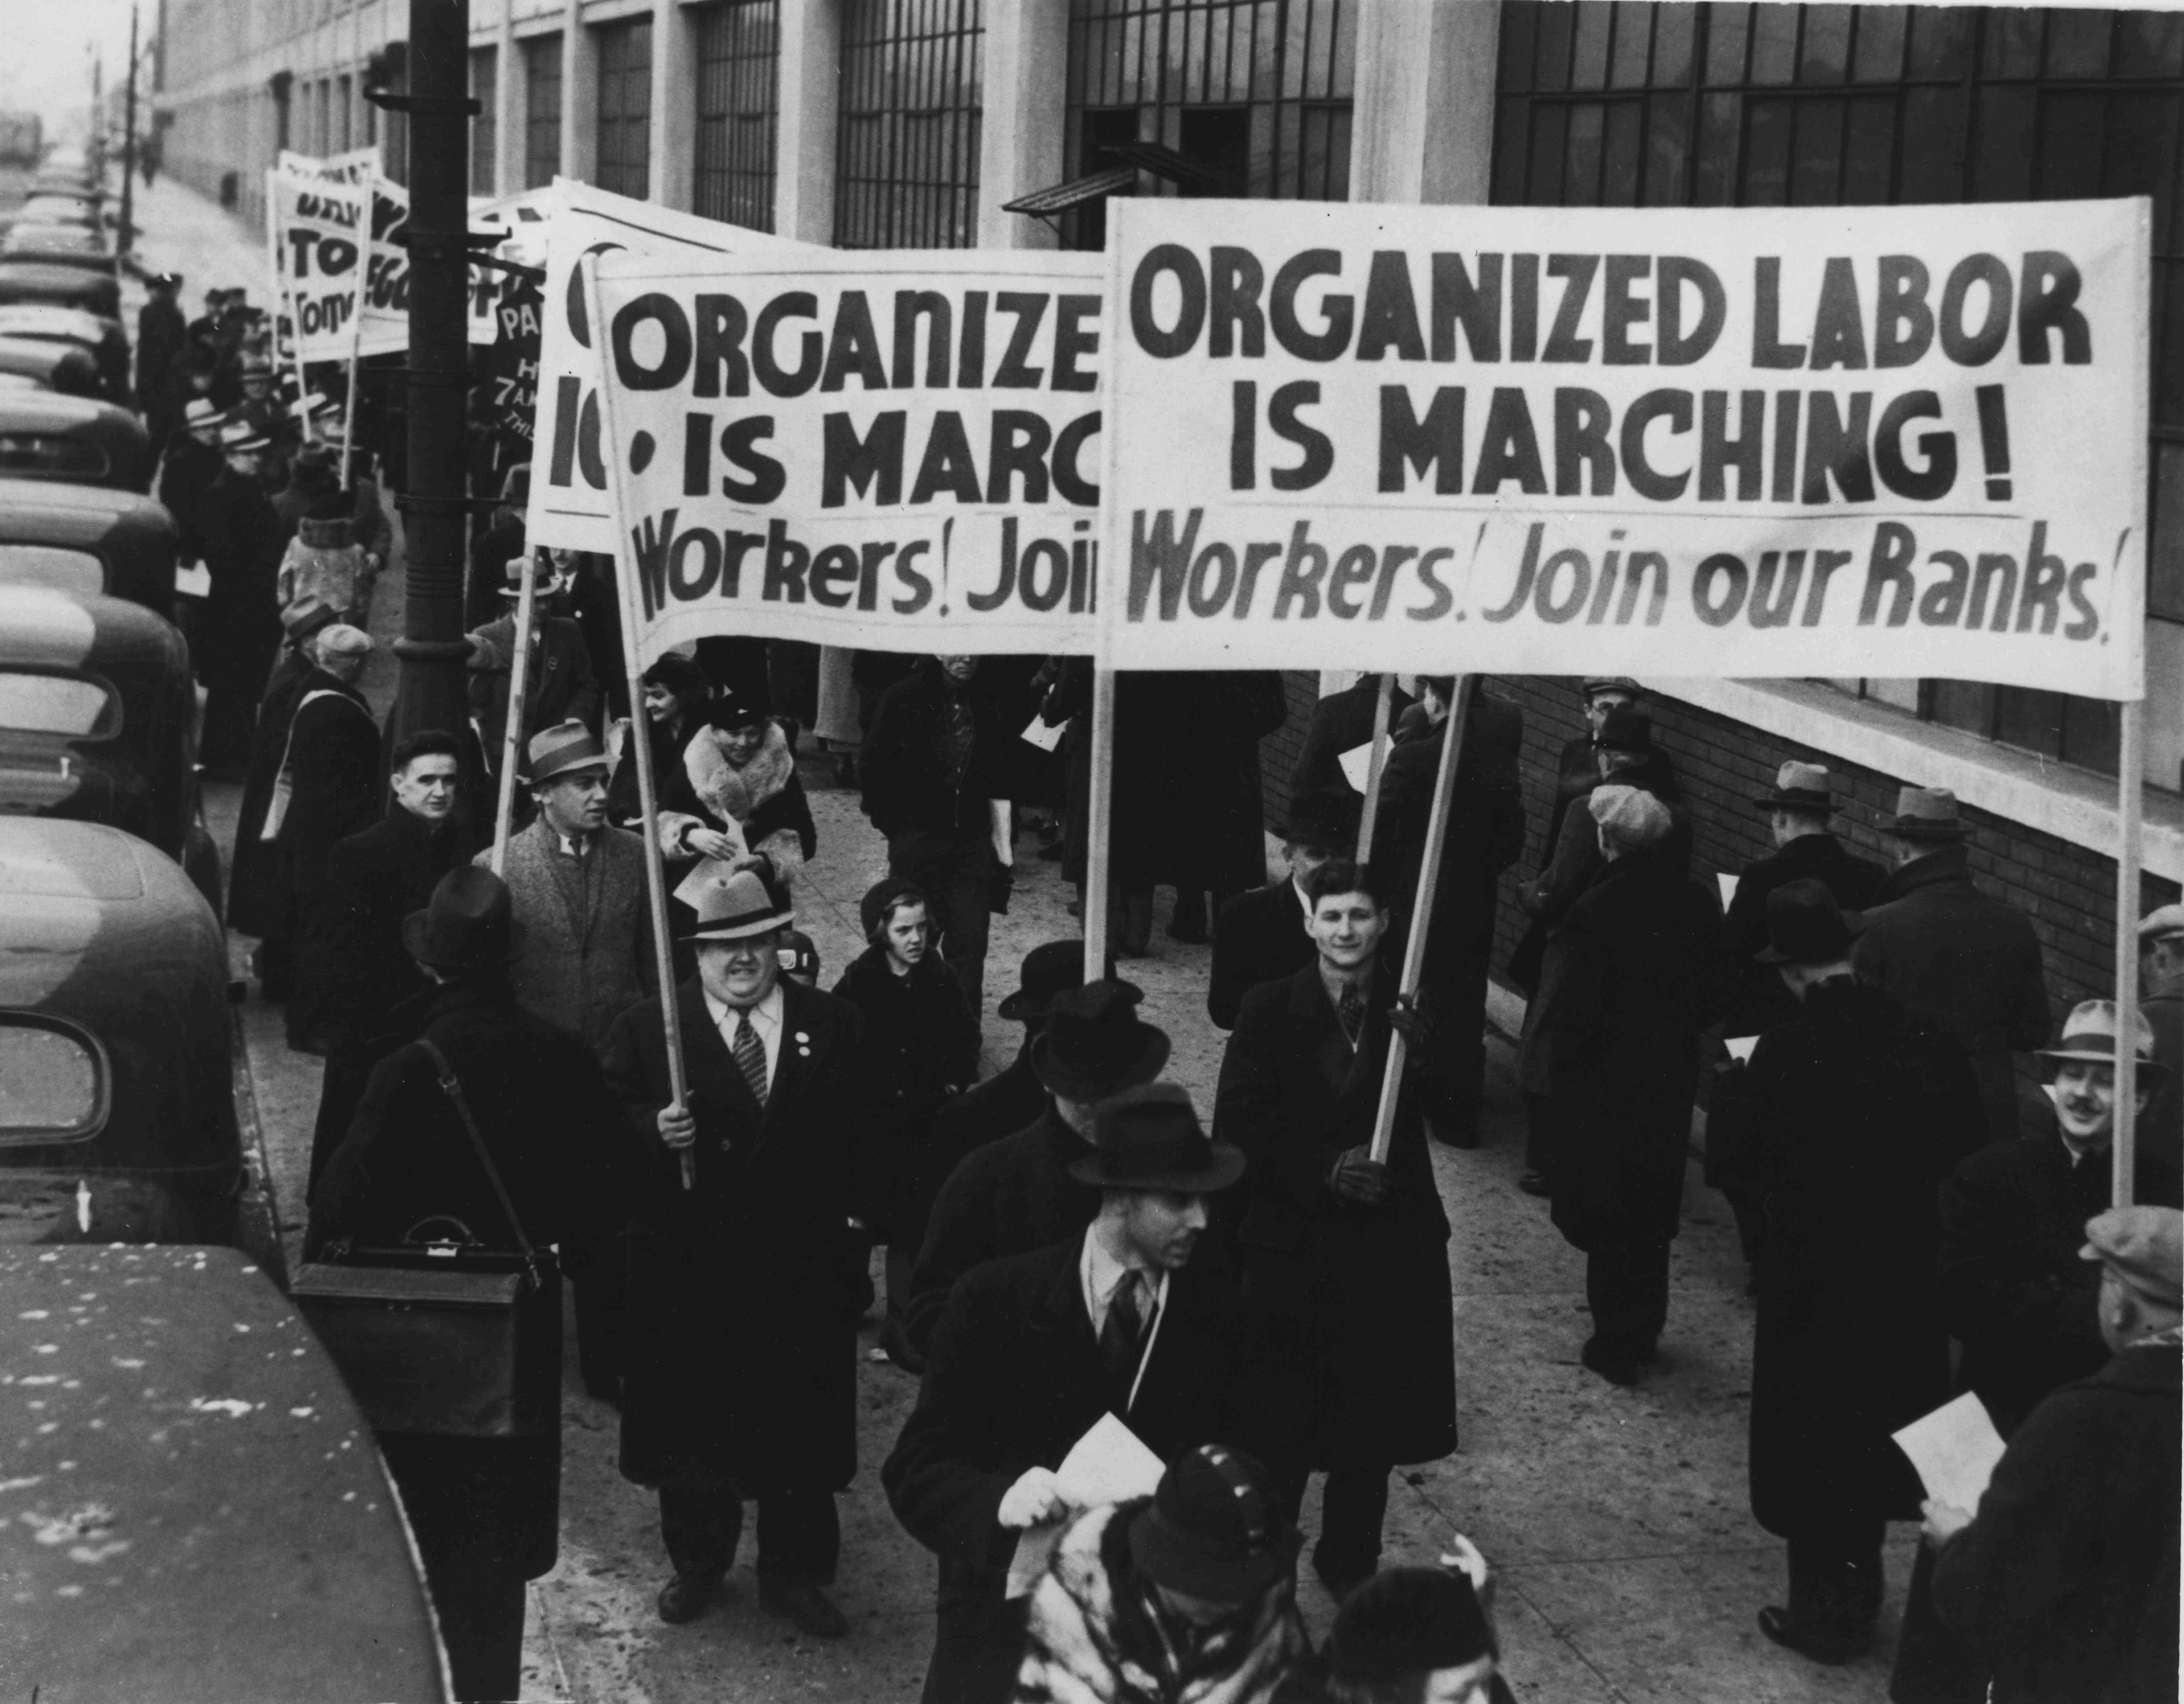 Rise and fall of American labor unions - Essay Example